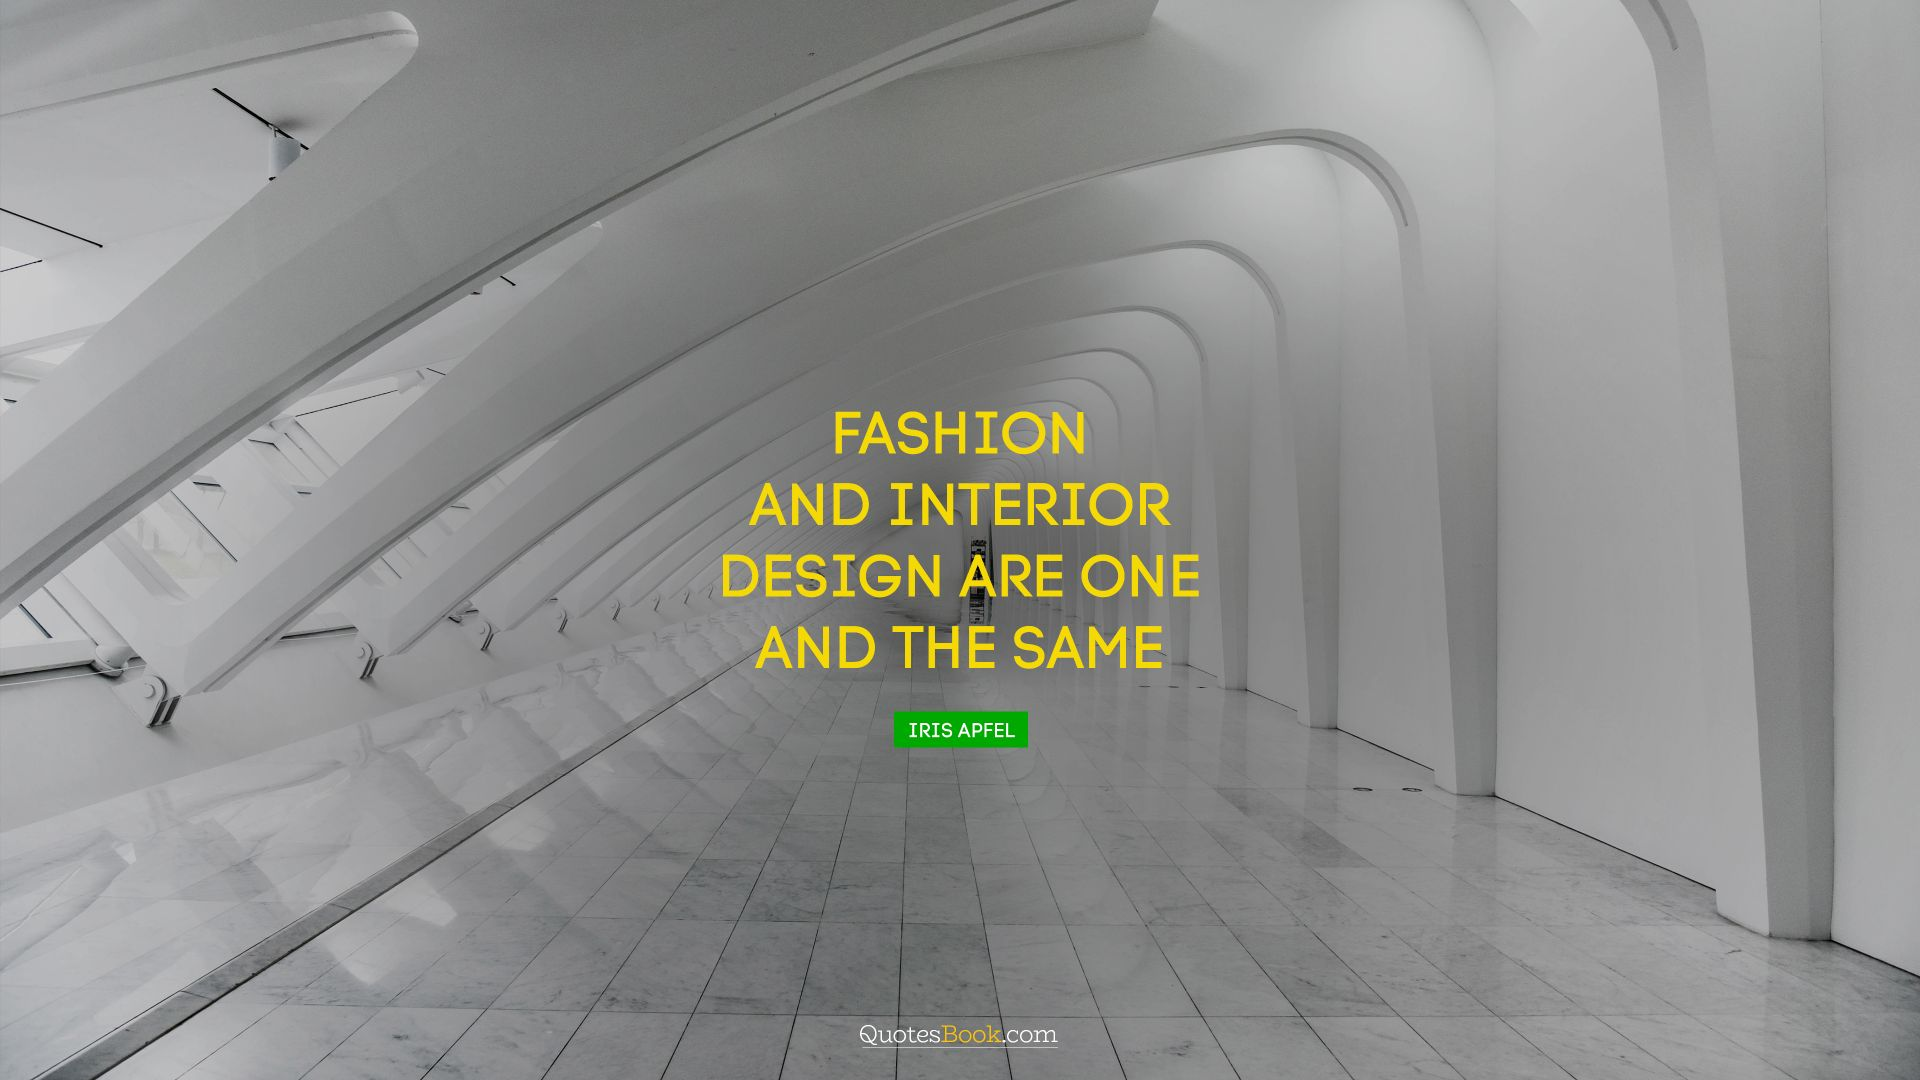 Fashion and interior design are one and the same. - Quote by Iris Apfel